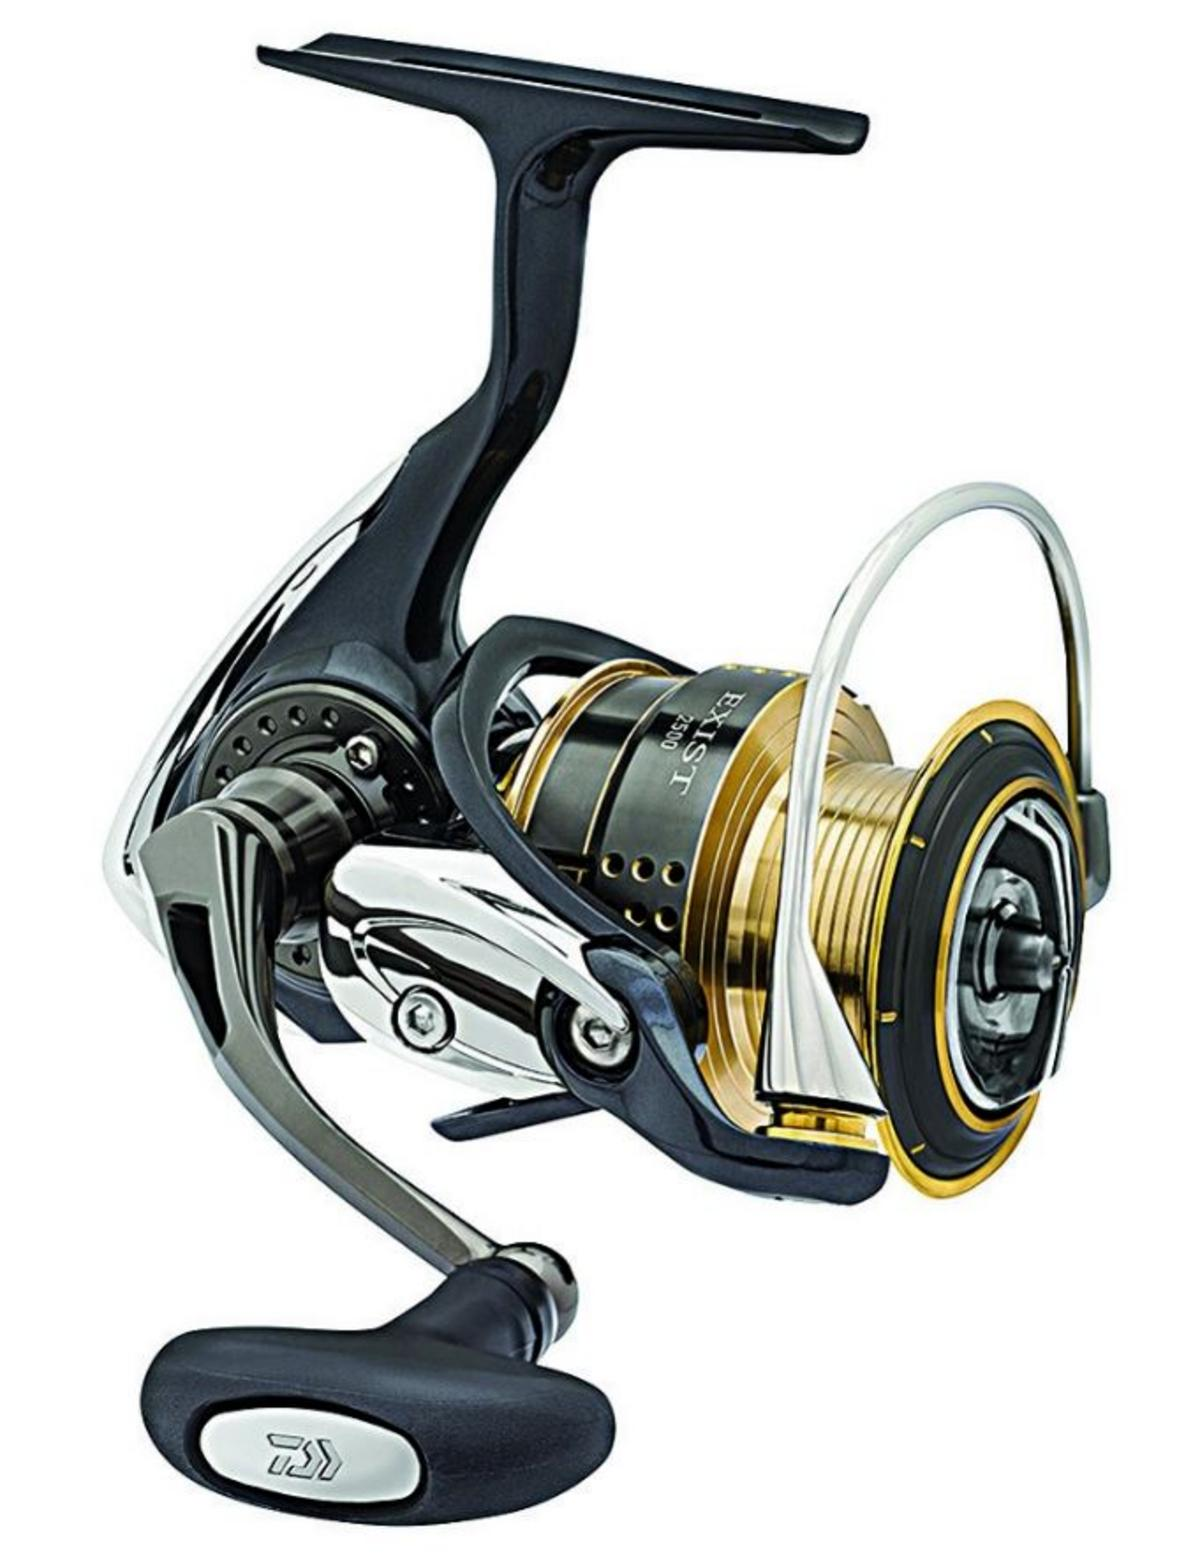 New Daiwa 15 Exist Saltwater Freshwater Spinning Reel 15EX3012H